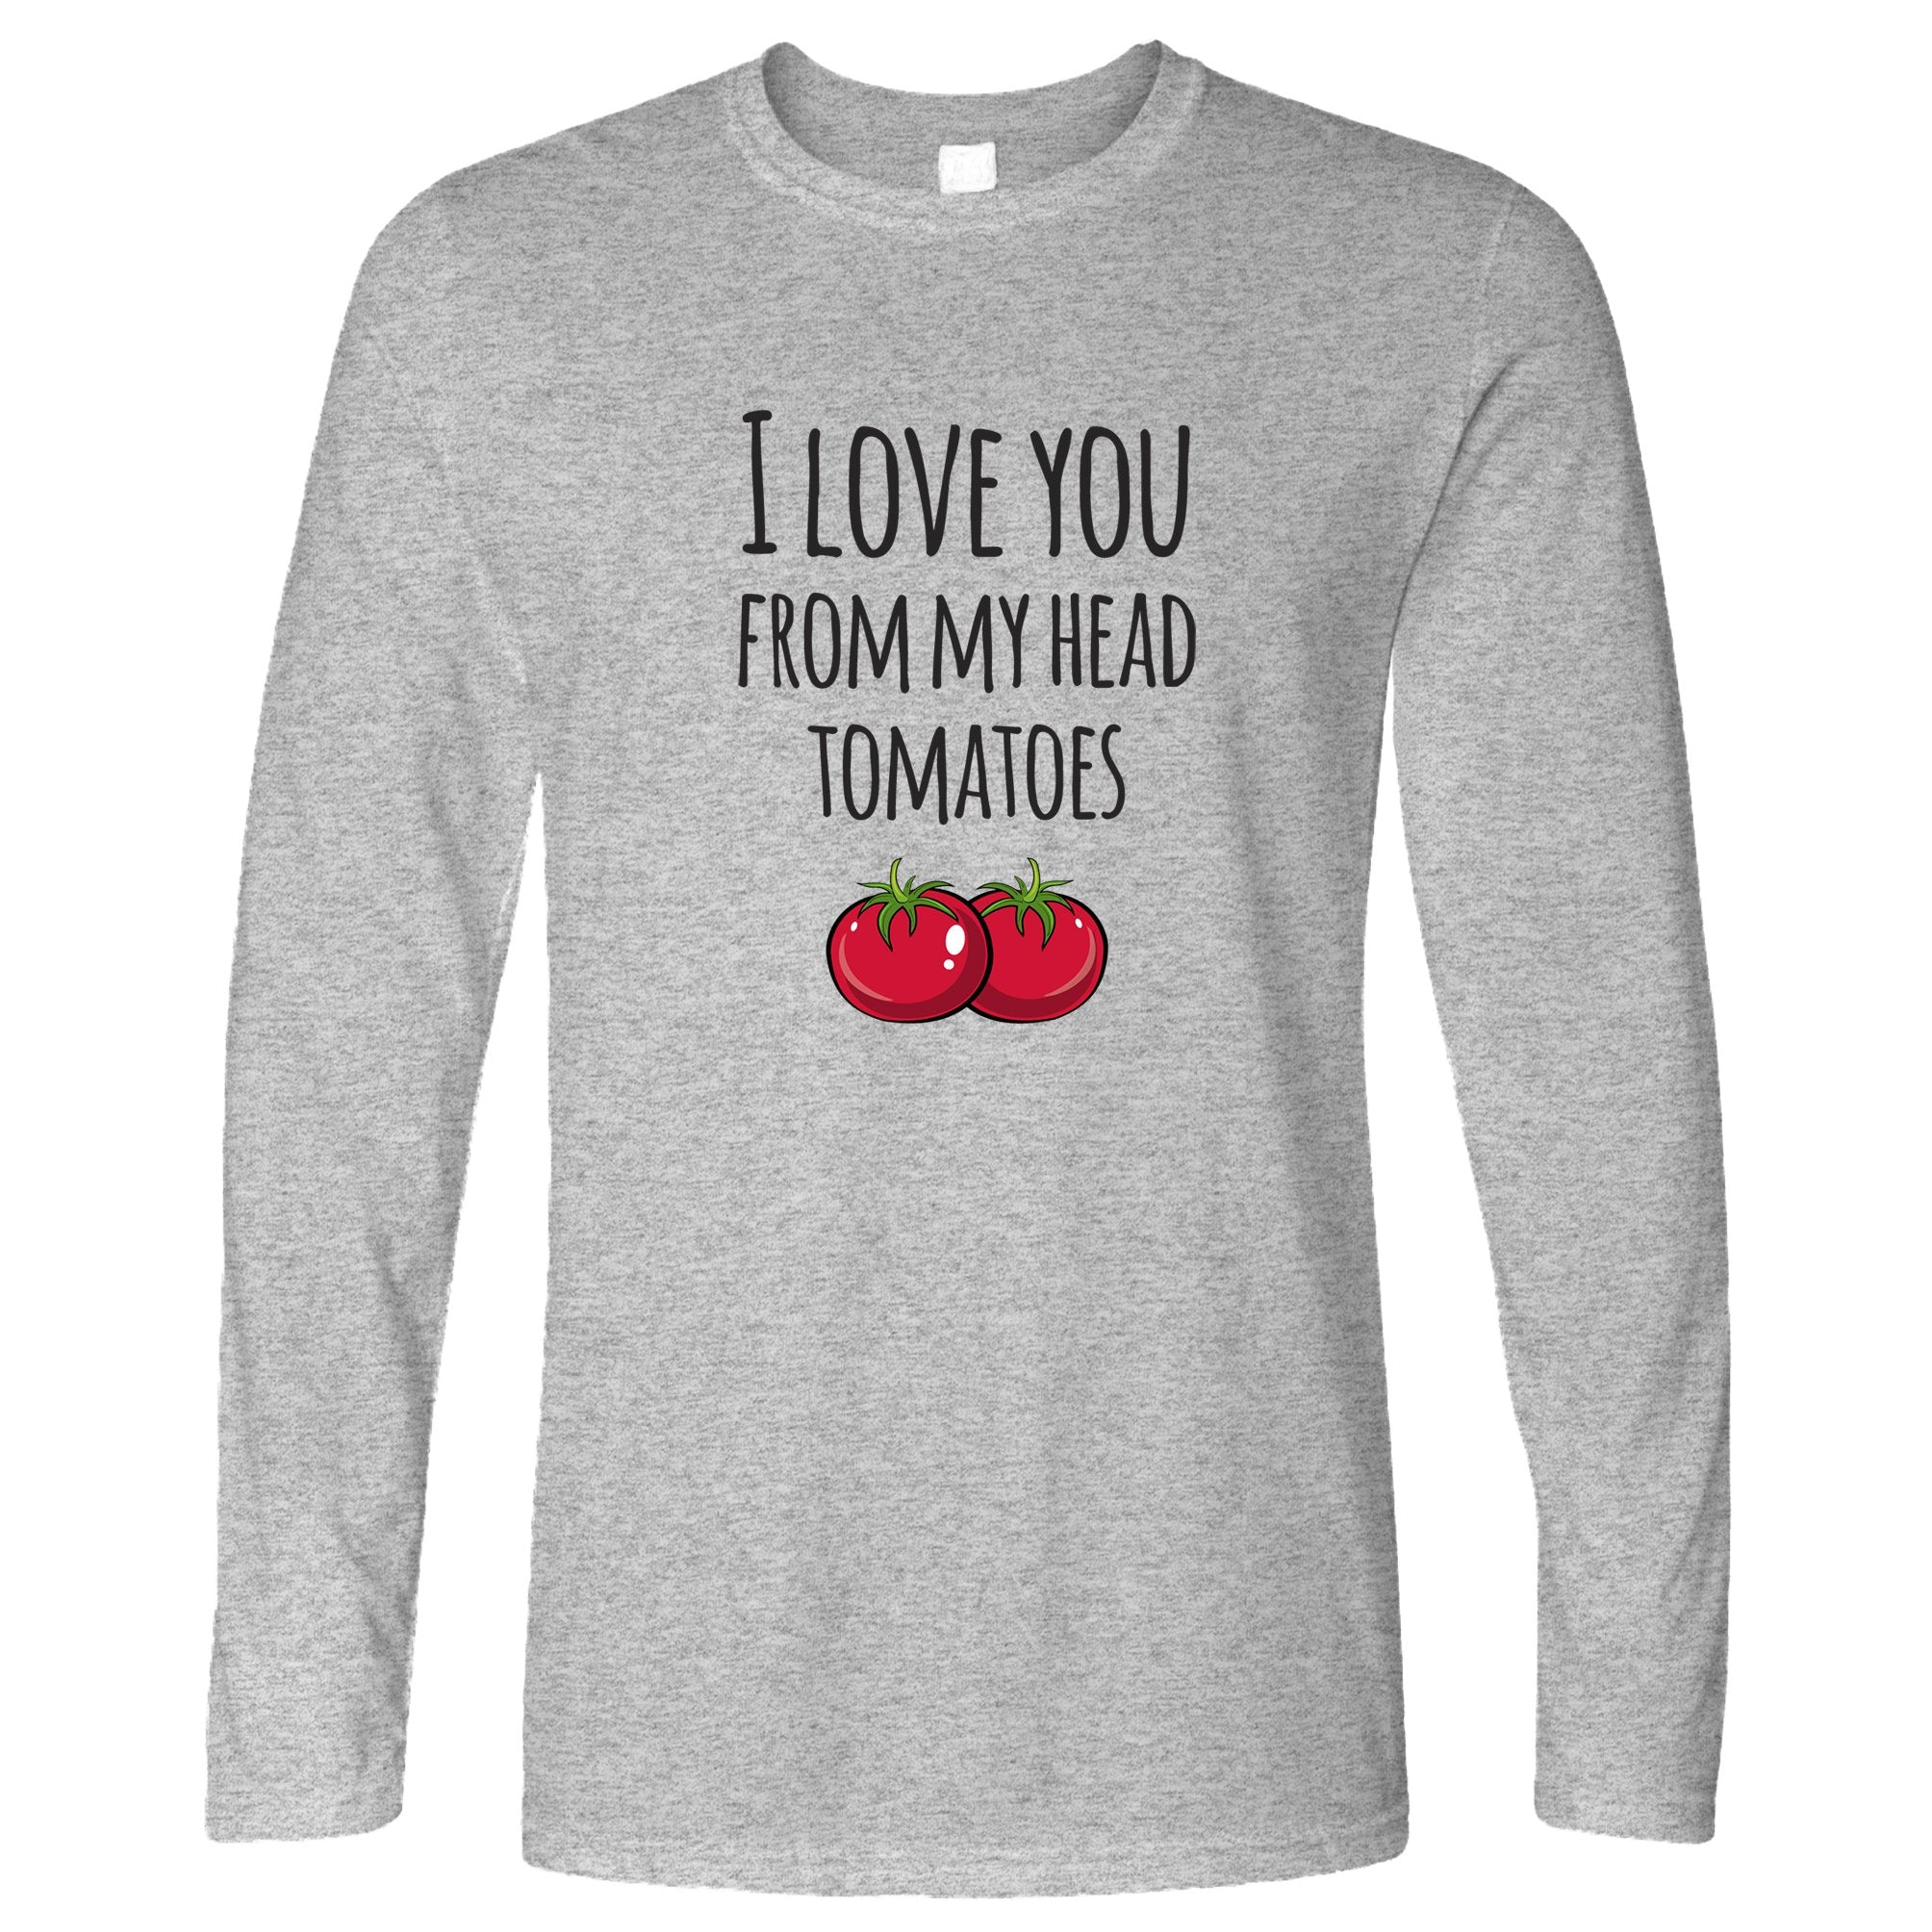 Valentines Pun Long Sleeve Love You From My Head Tomatoes T-Shirt